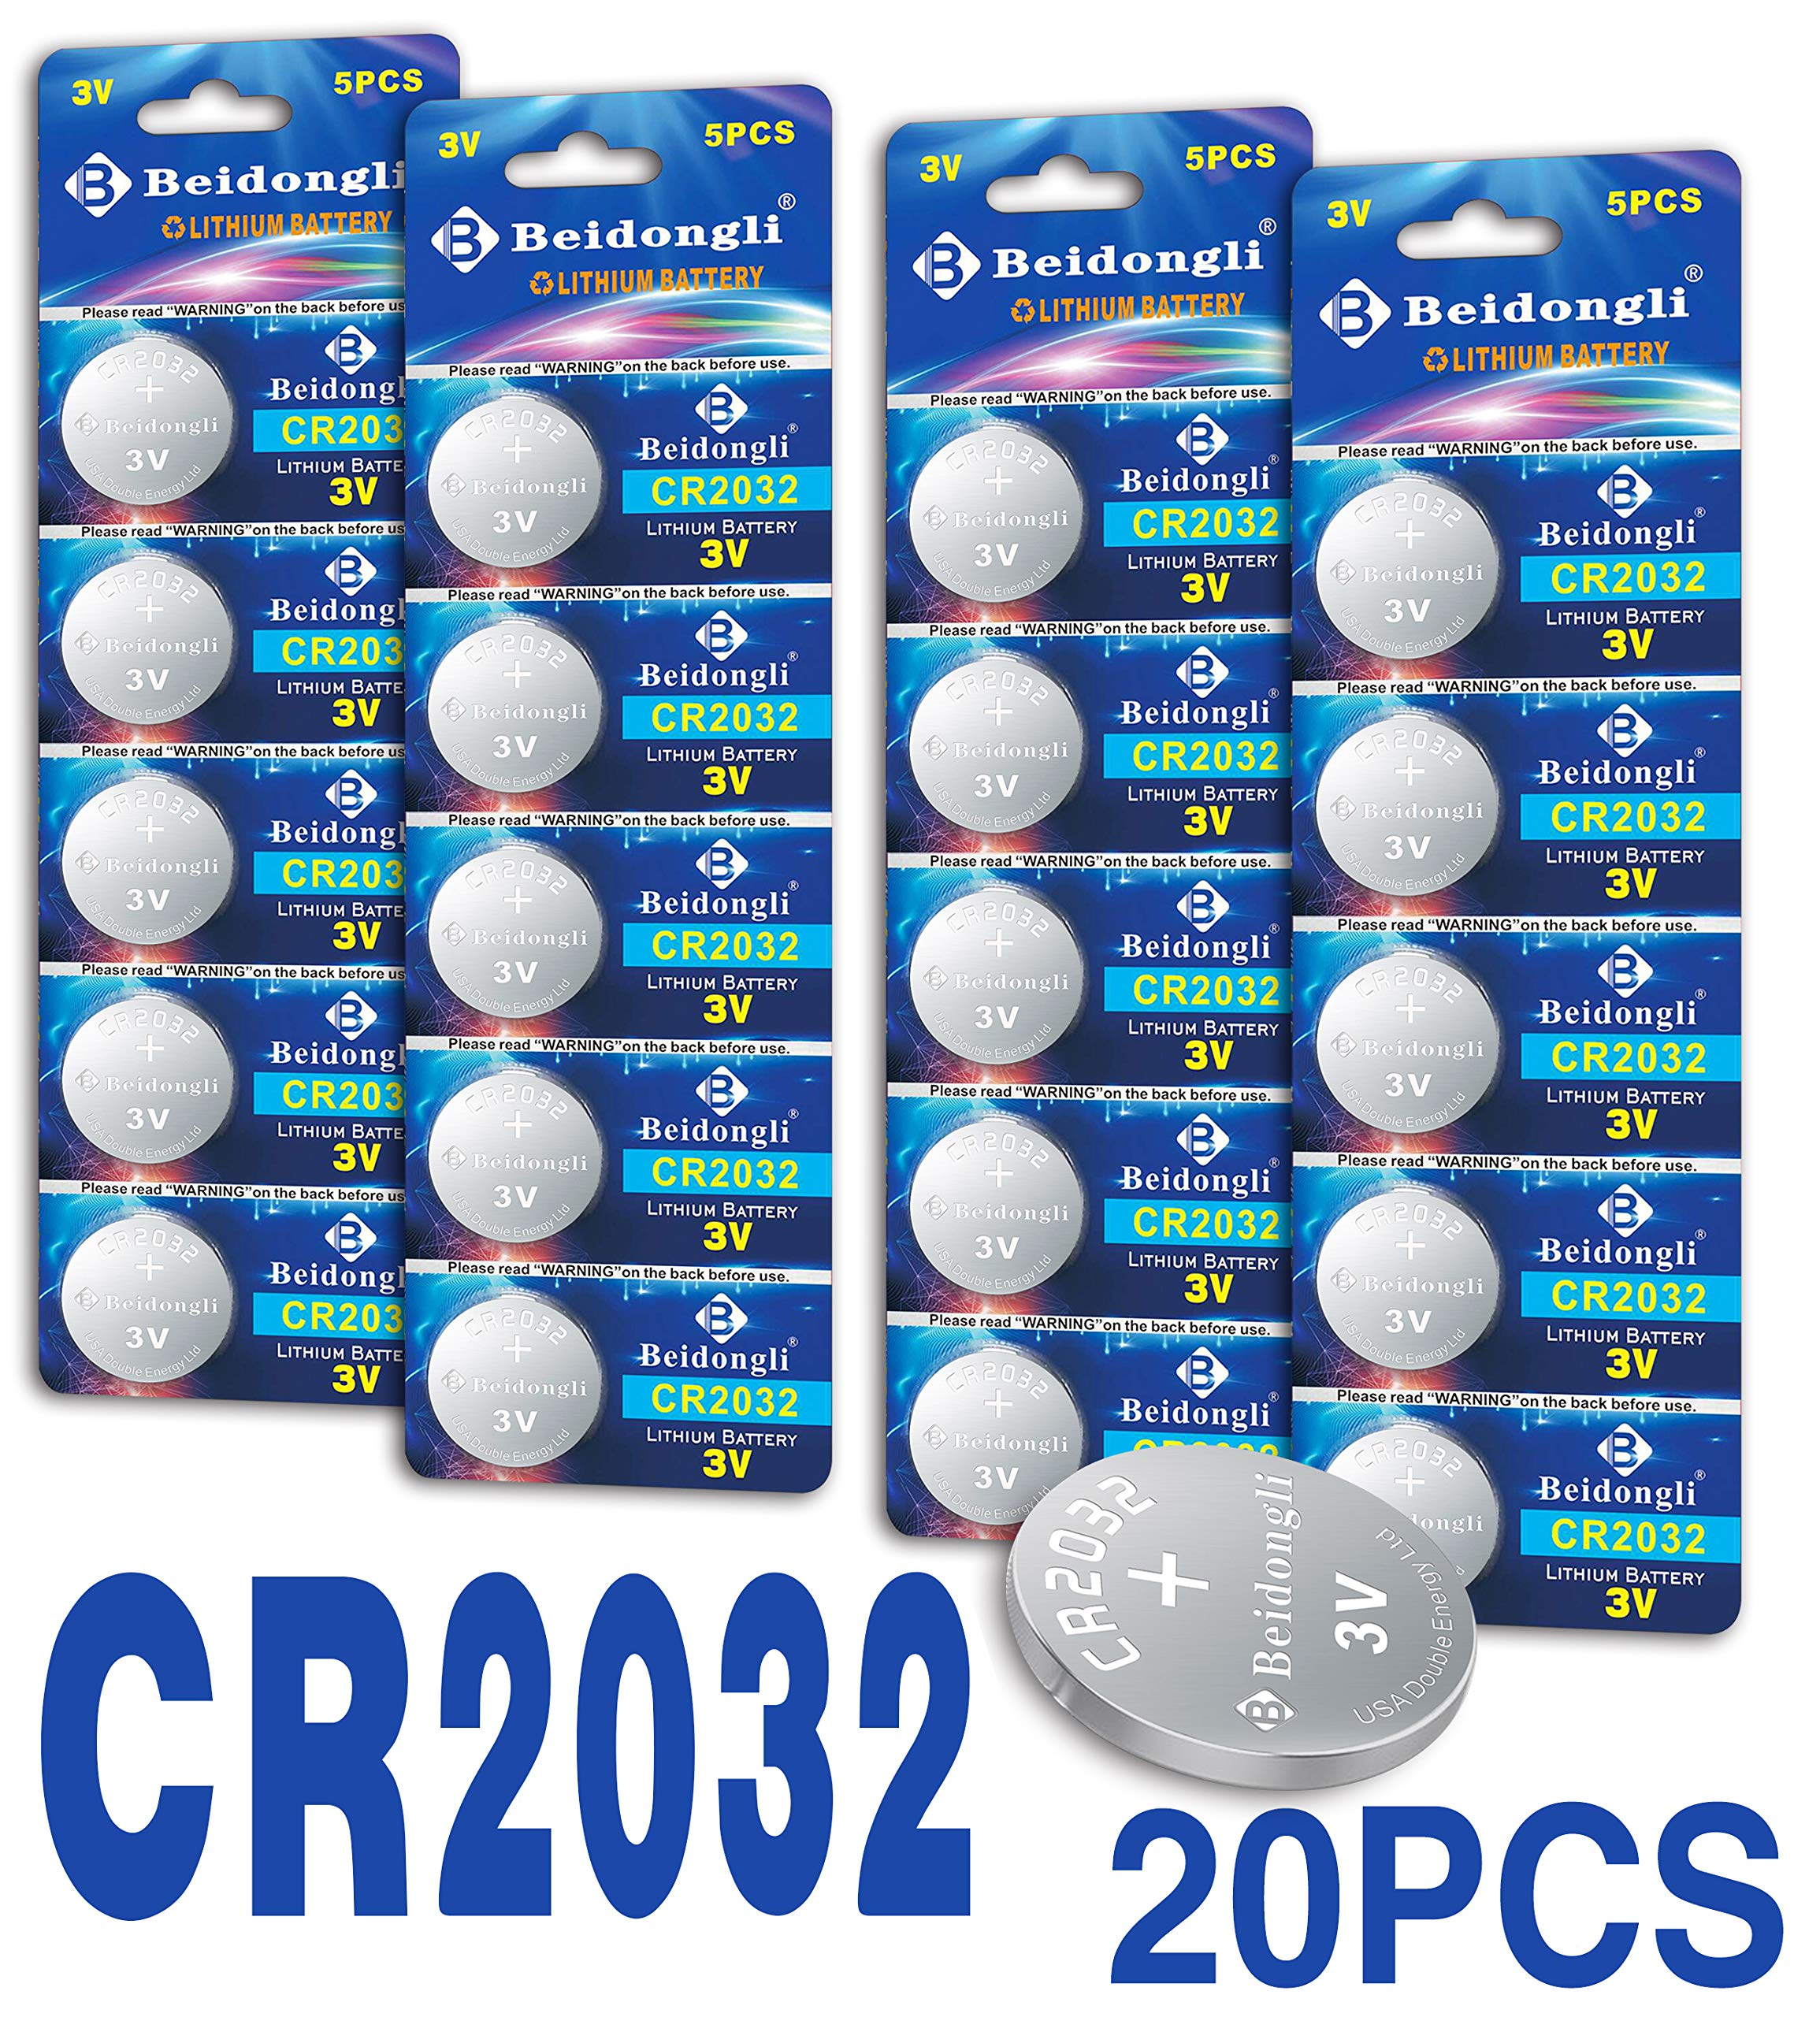 Beidongli CR2032 Battery 3V Lithium Battery Coin Button Cell 20 Pack high Capacity 【5-Year Warranty】